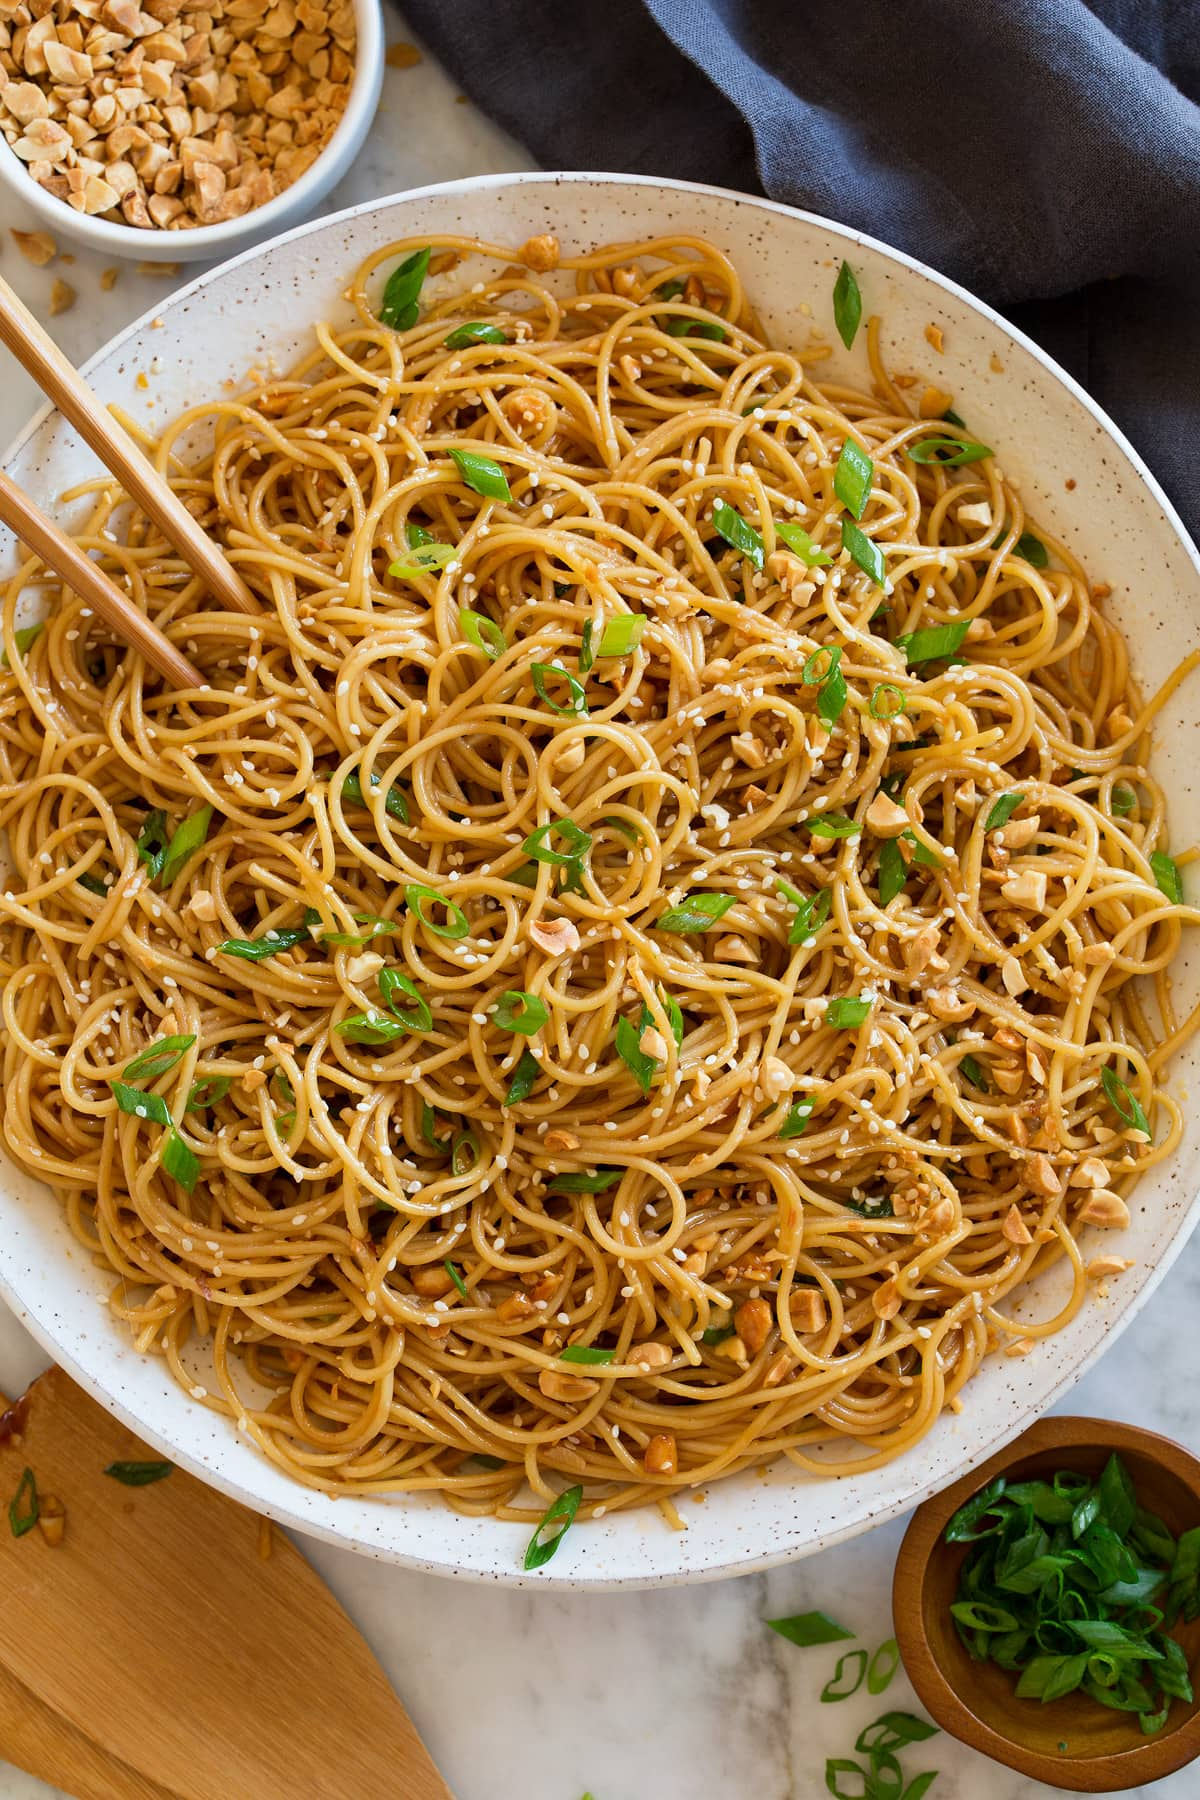 Photo: Bowl of sesame noodles topped with peanuts, sliced green onions and sesame seeds. Shown overhead in a white bowl with a dark napkin underneath and chopsticks and serving spoons to the side.